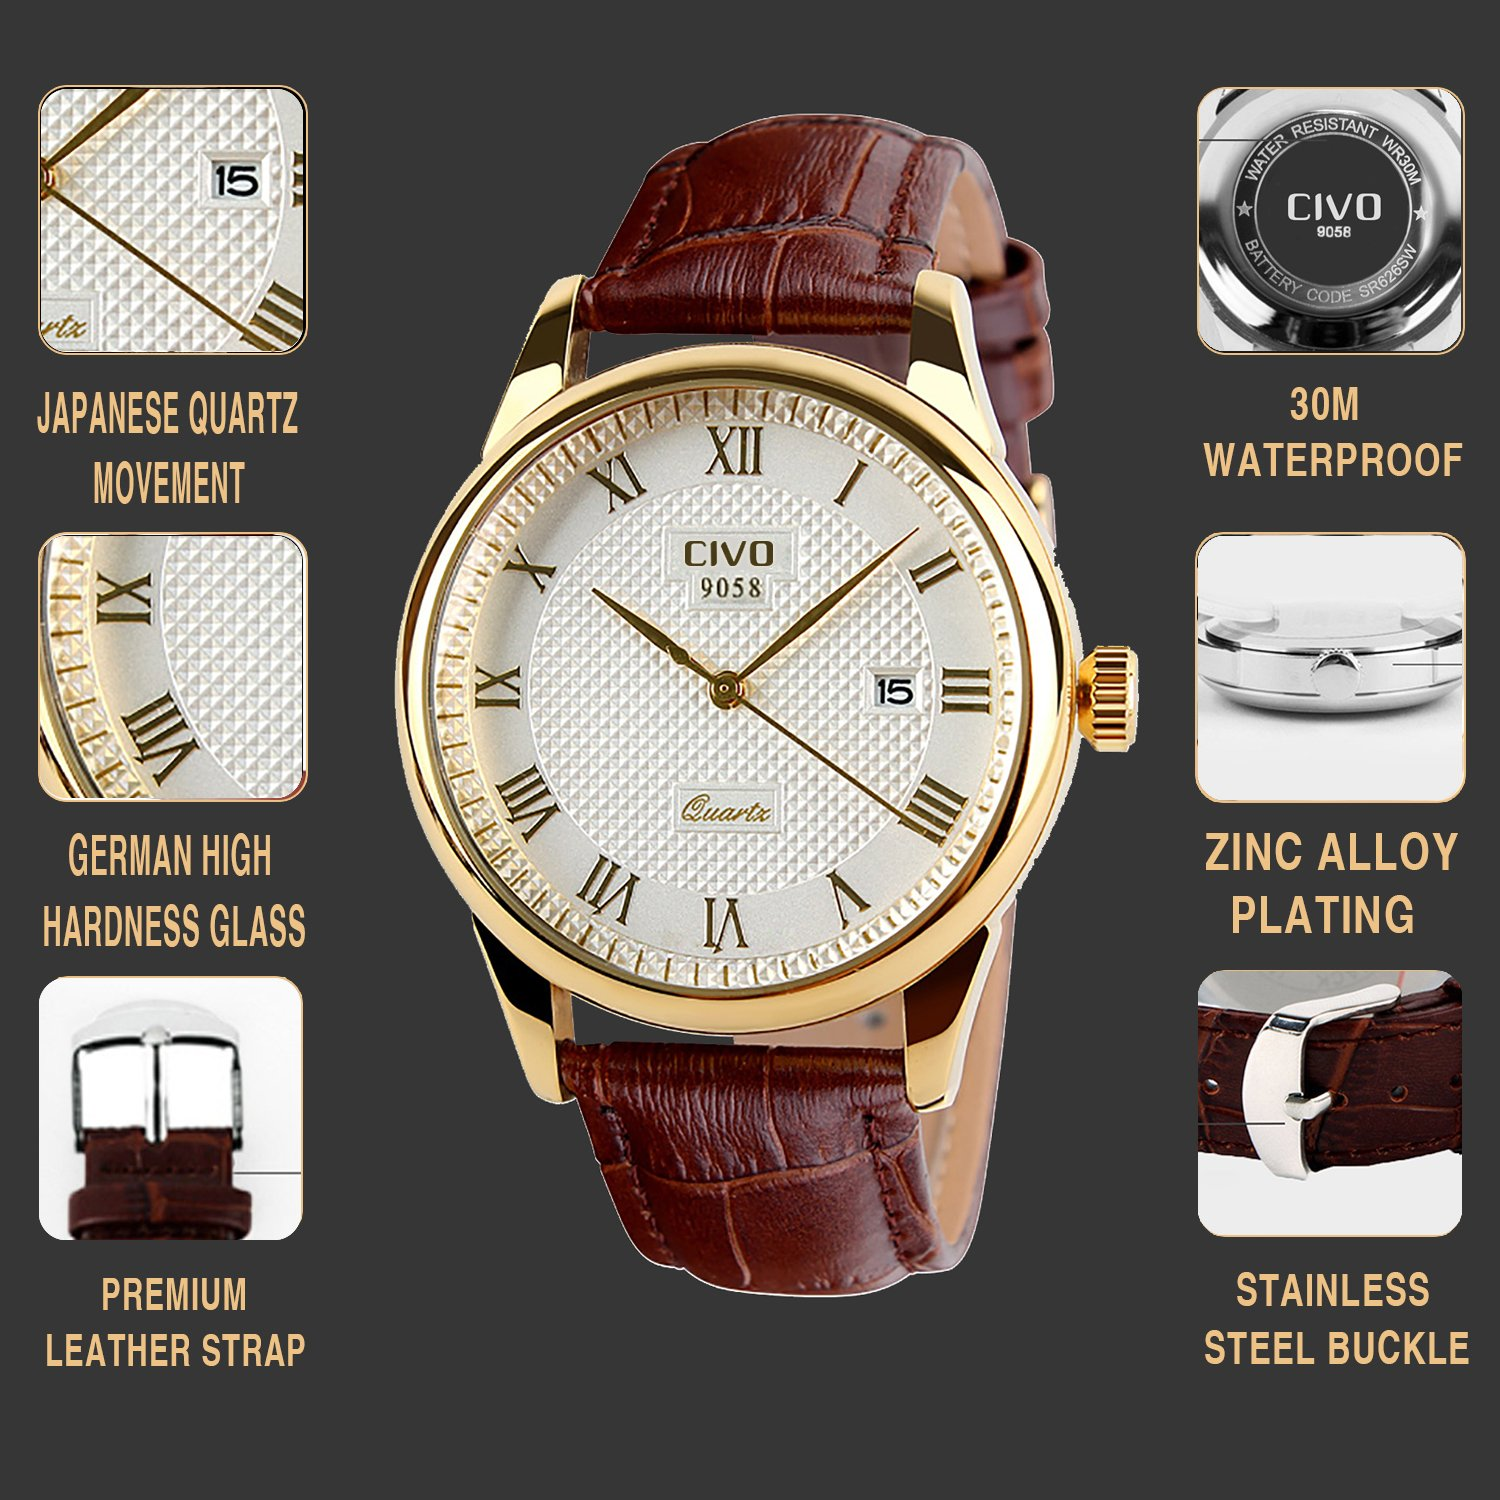 golfer men content and american steel watch gq the of sea perpetual business deepsea wear rolex fashionable most oyster woods india celebrities watches professional celebrity s they deep tiger